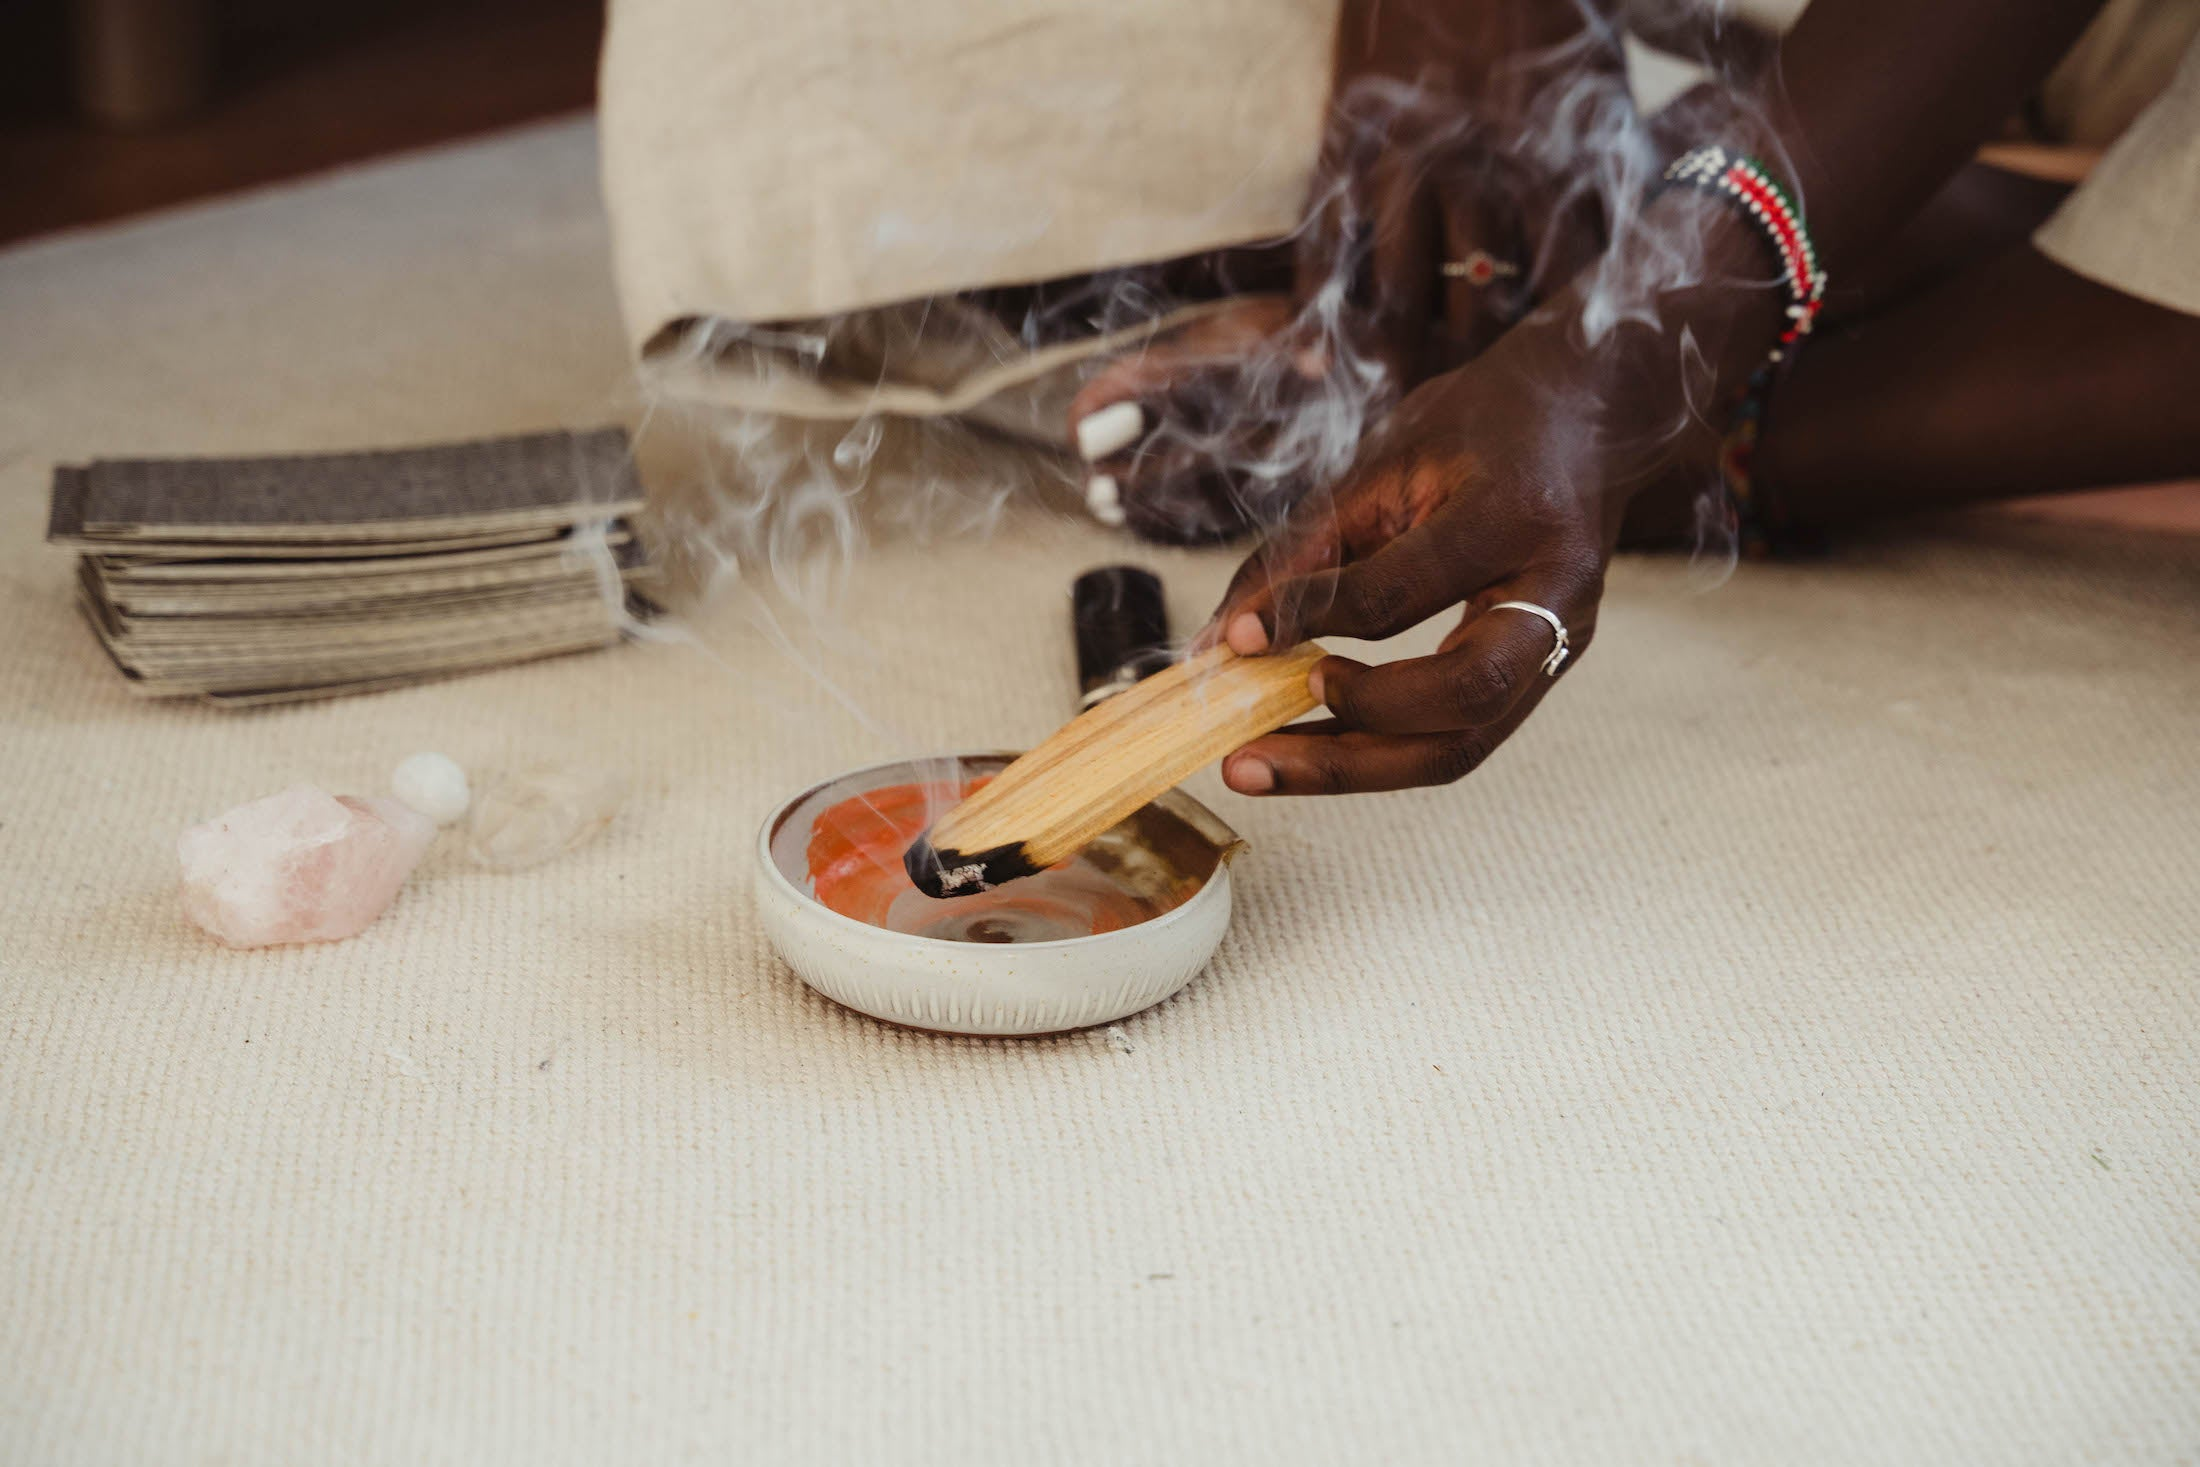 burning palo santo in a tray